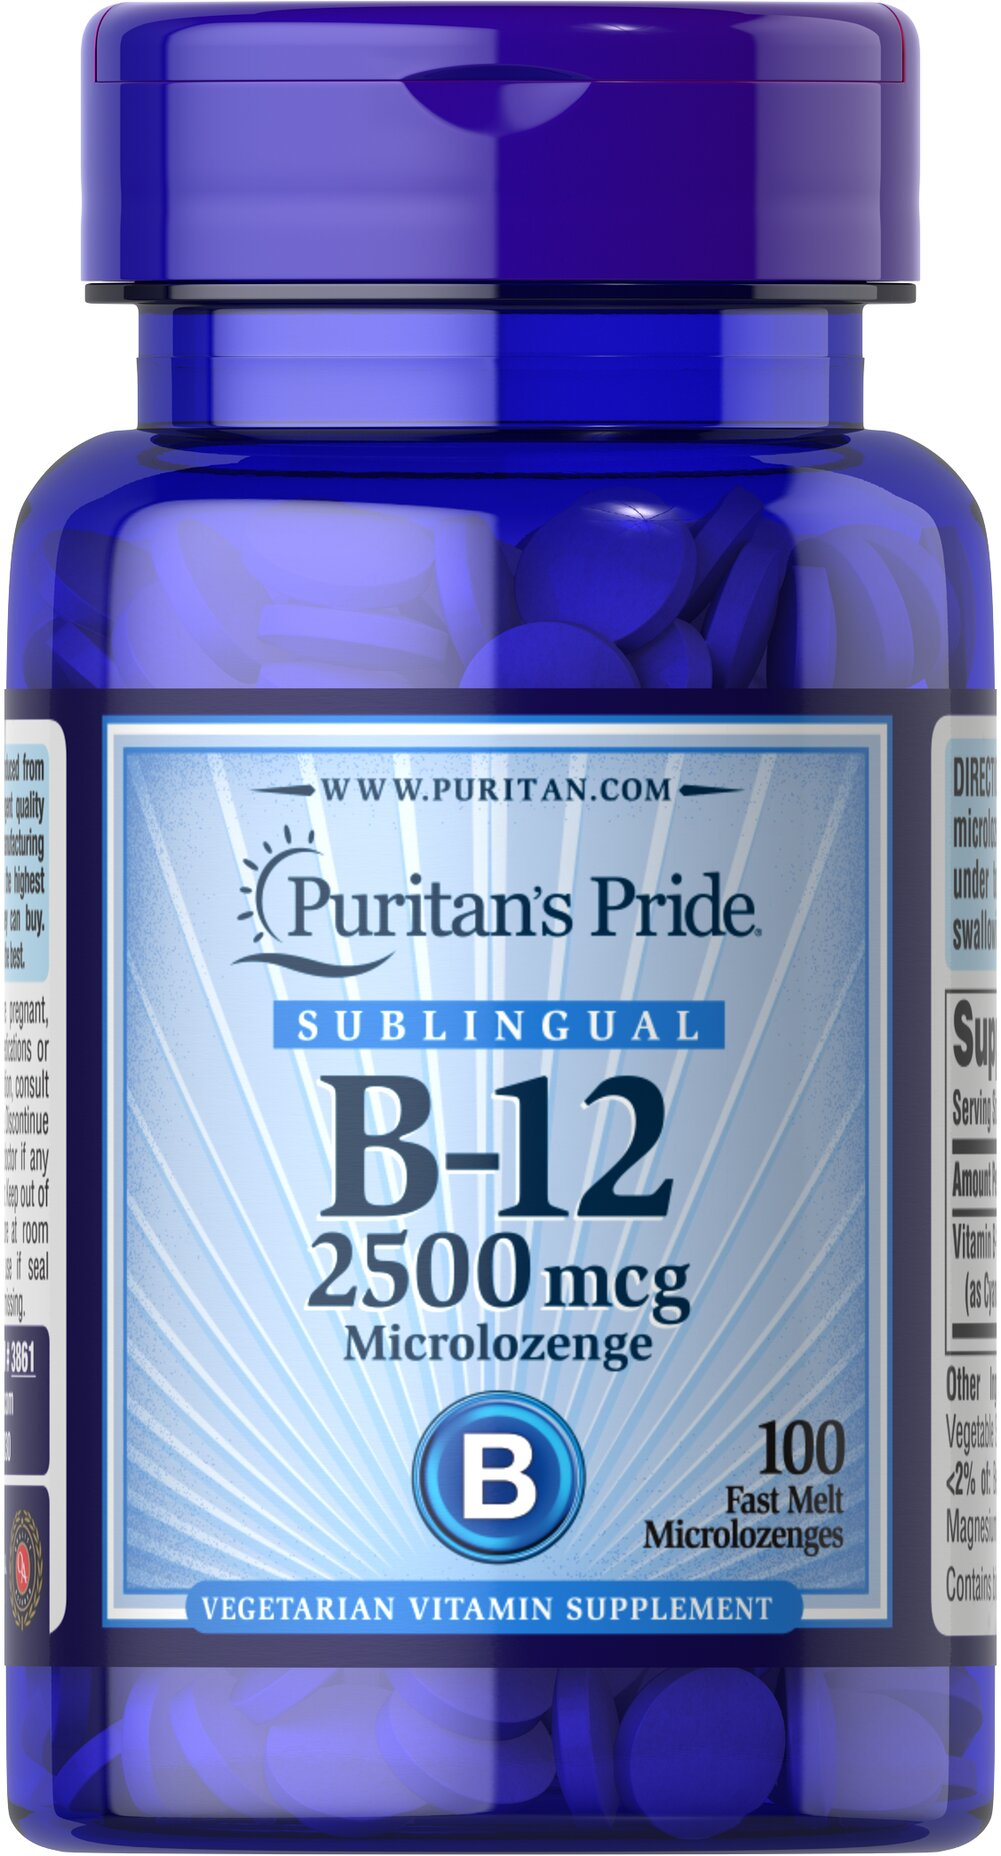 Vitamin B-12 2500 mcg Sublingual <p>Puritan's Pride's unique B-12  lozenges and dots deliver essential B vitamins for energy metabolism in the body.** Vitamin B-12 is also essential for the normal formation of blood cells, contributes to the health of the nervous system, and helps maintain circulatory health.** Adults can take one lozenge or dot daily with a meal. Place lozenge or dot under tongue for 30 seconds before swallowing.</p> 100 Microlozenges 2500 mcg $13.71